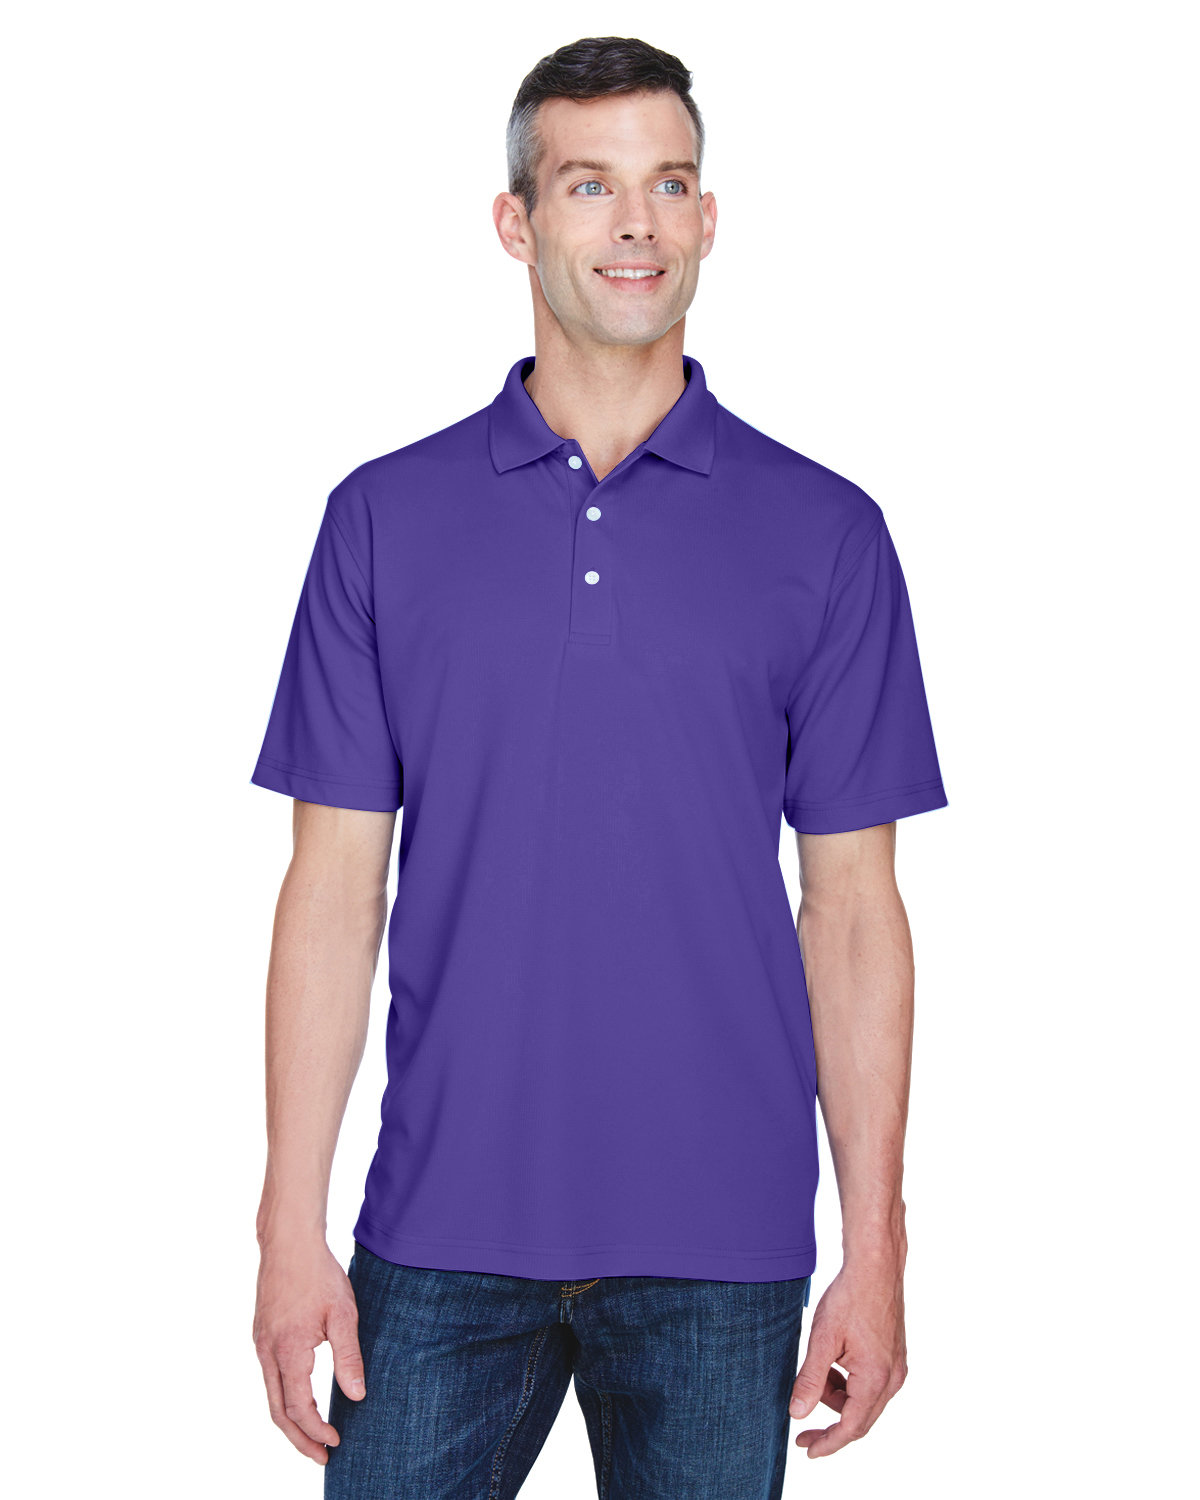 UltraClub Men's Cool & Dry Stain-Release Performance Polo PURPLE